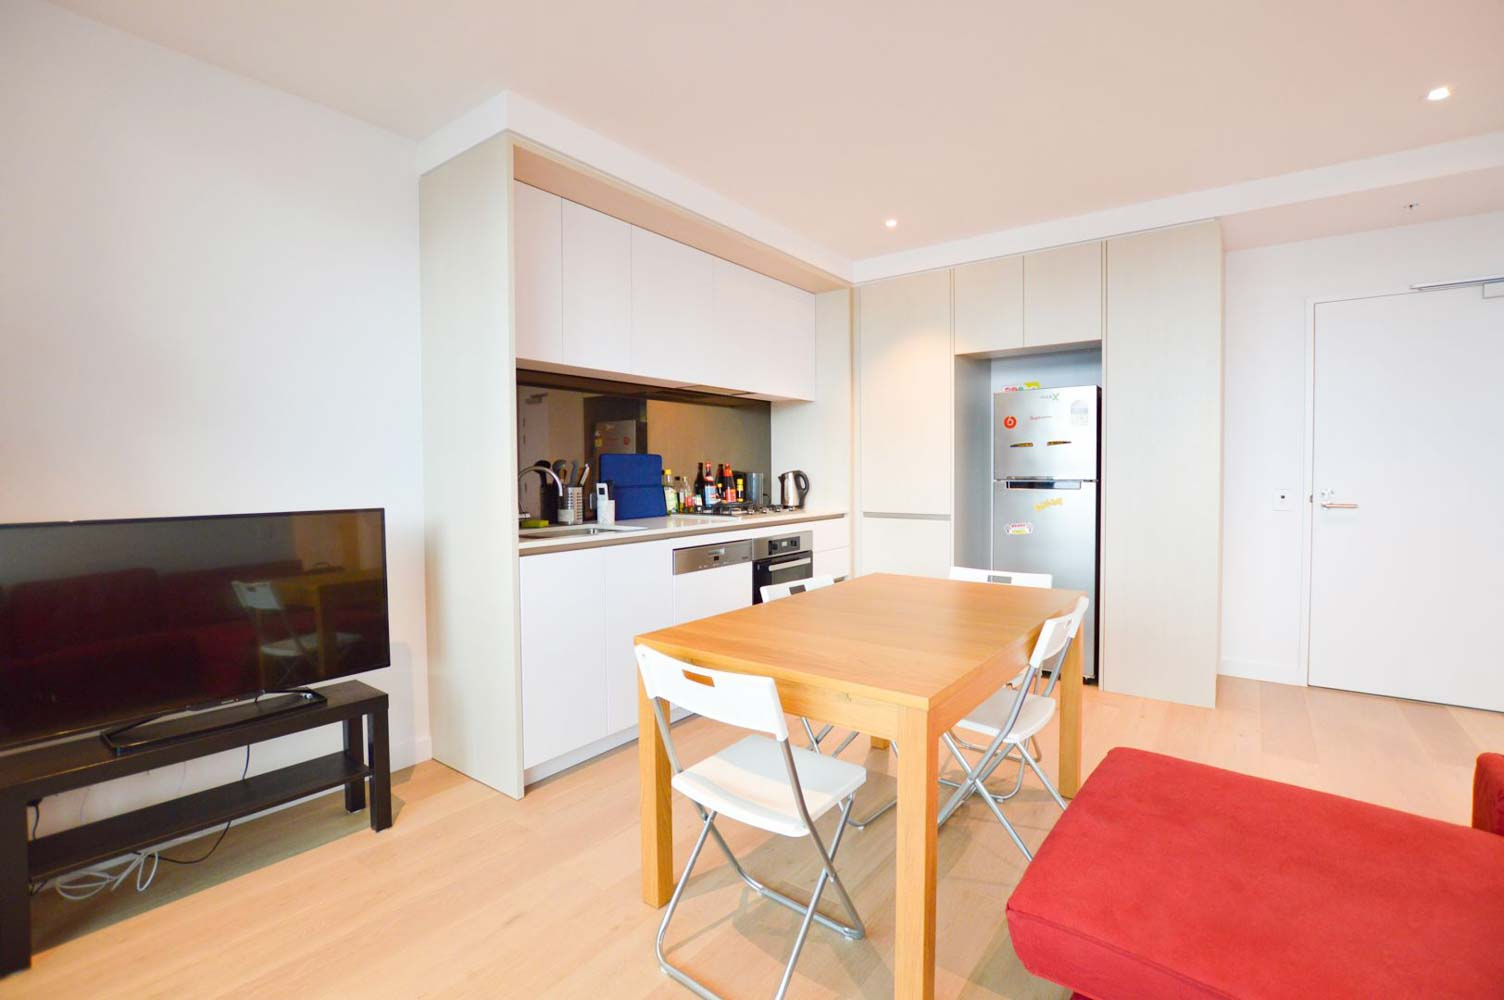 212-915-Collins-Street-Melbourne-Student-Accommodation-Melbourne-Common-Area-Unilodgers